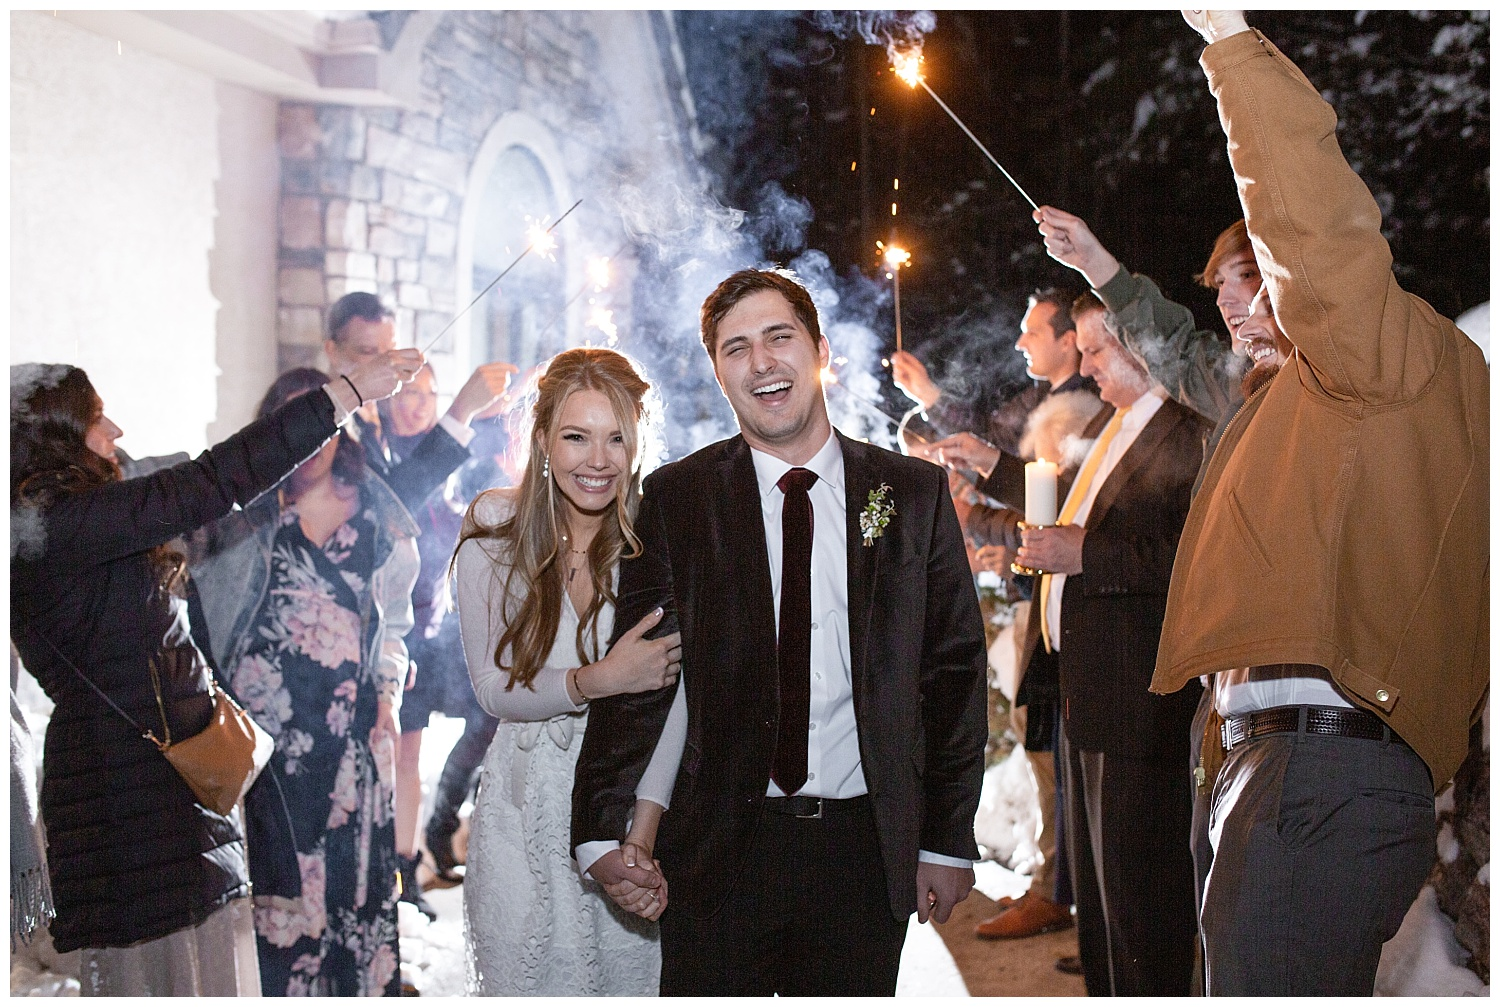 The groom laughs as the smoke from their sparkler exit lights up behind them